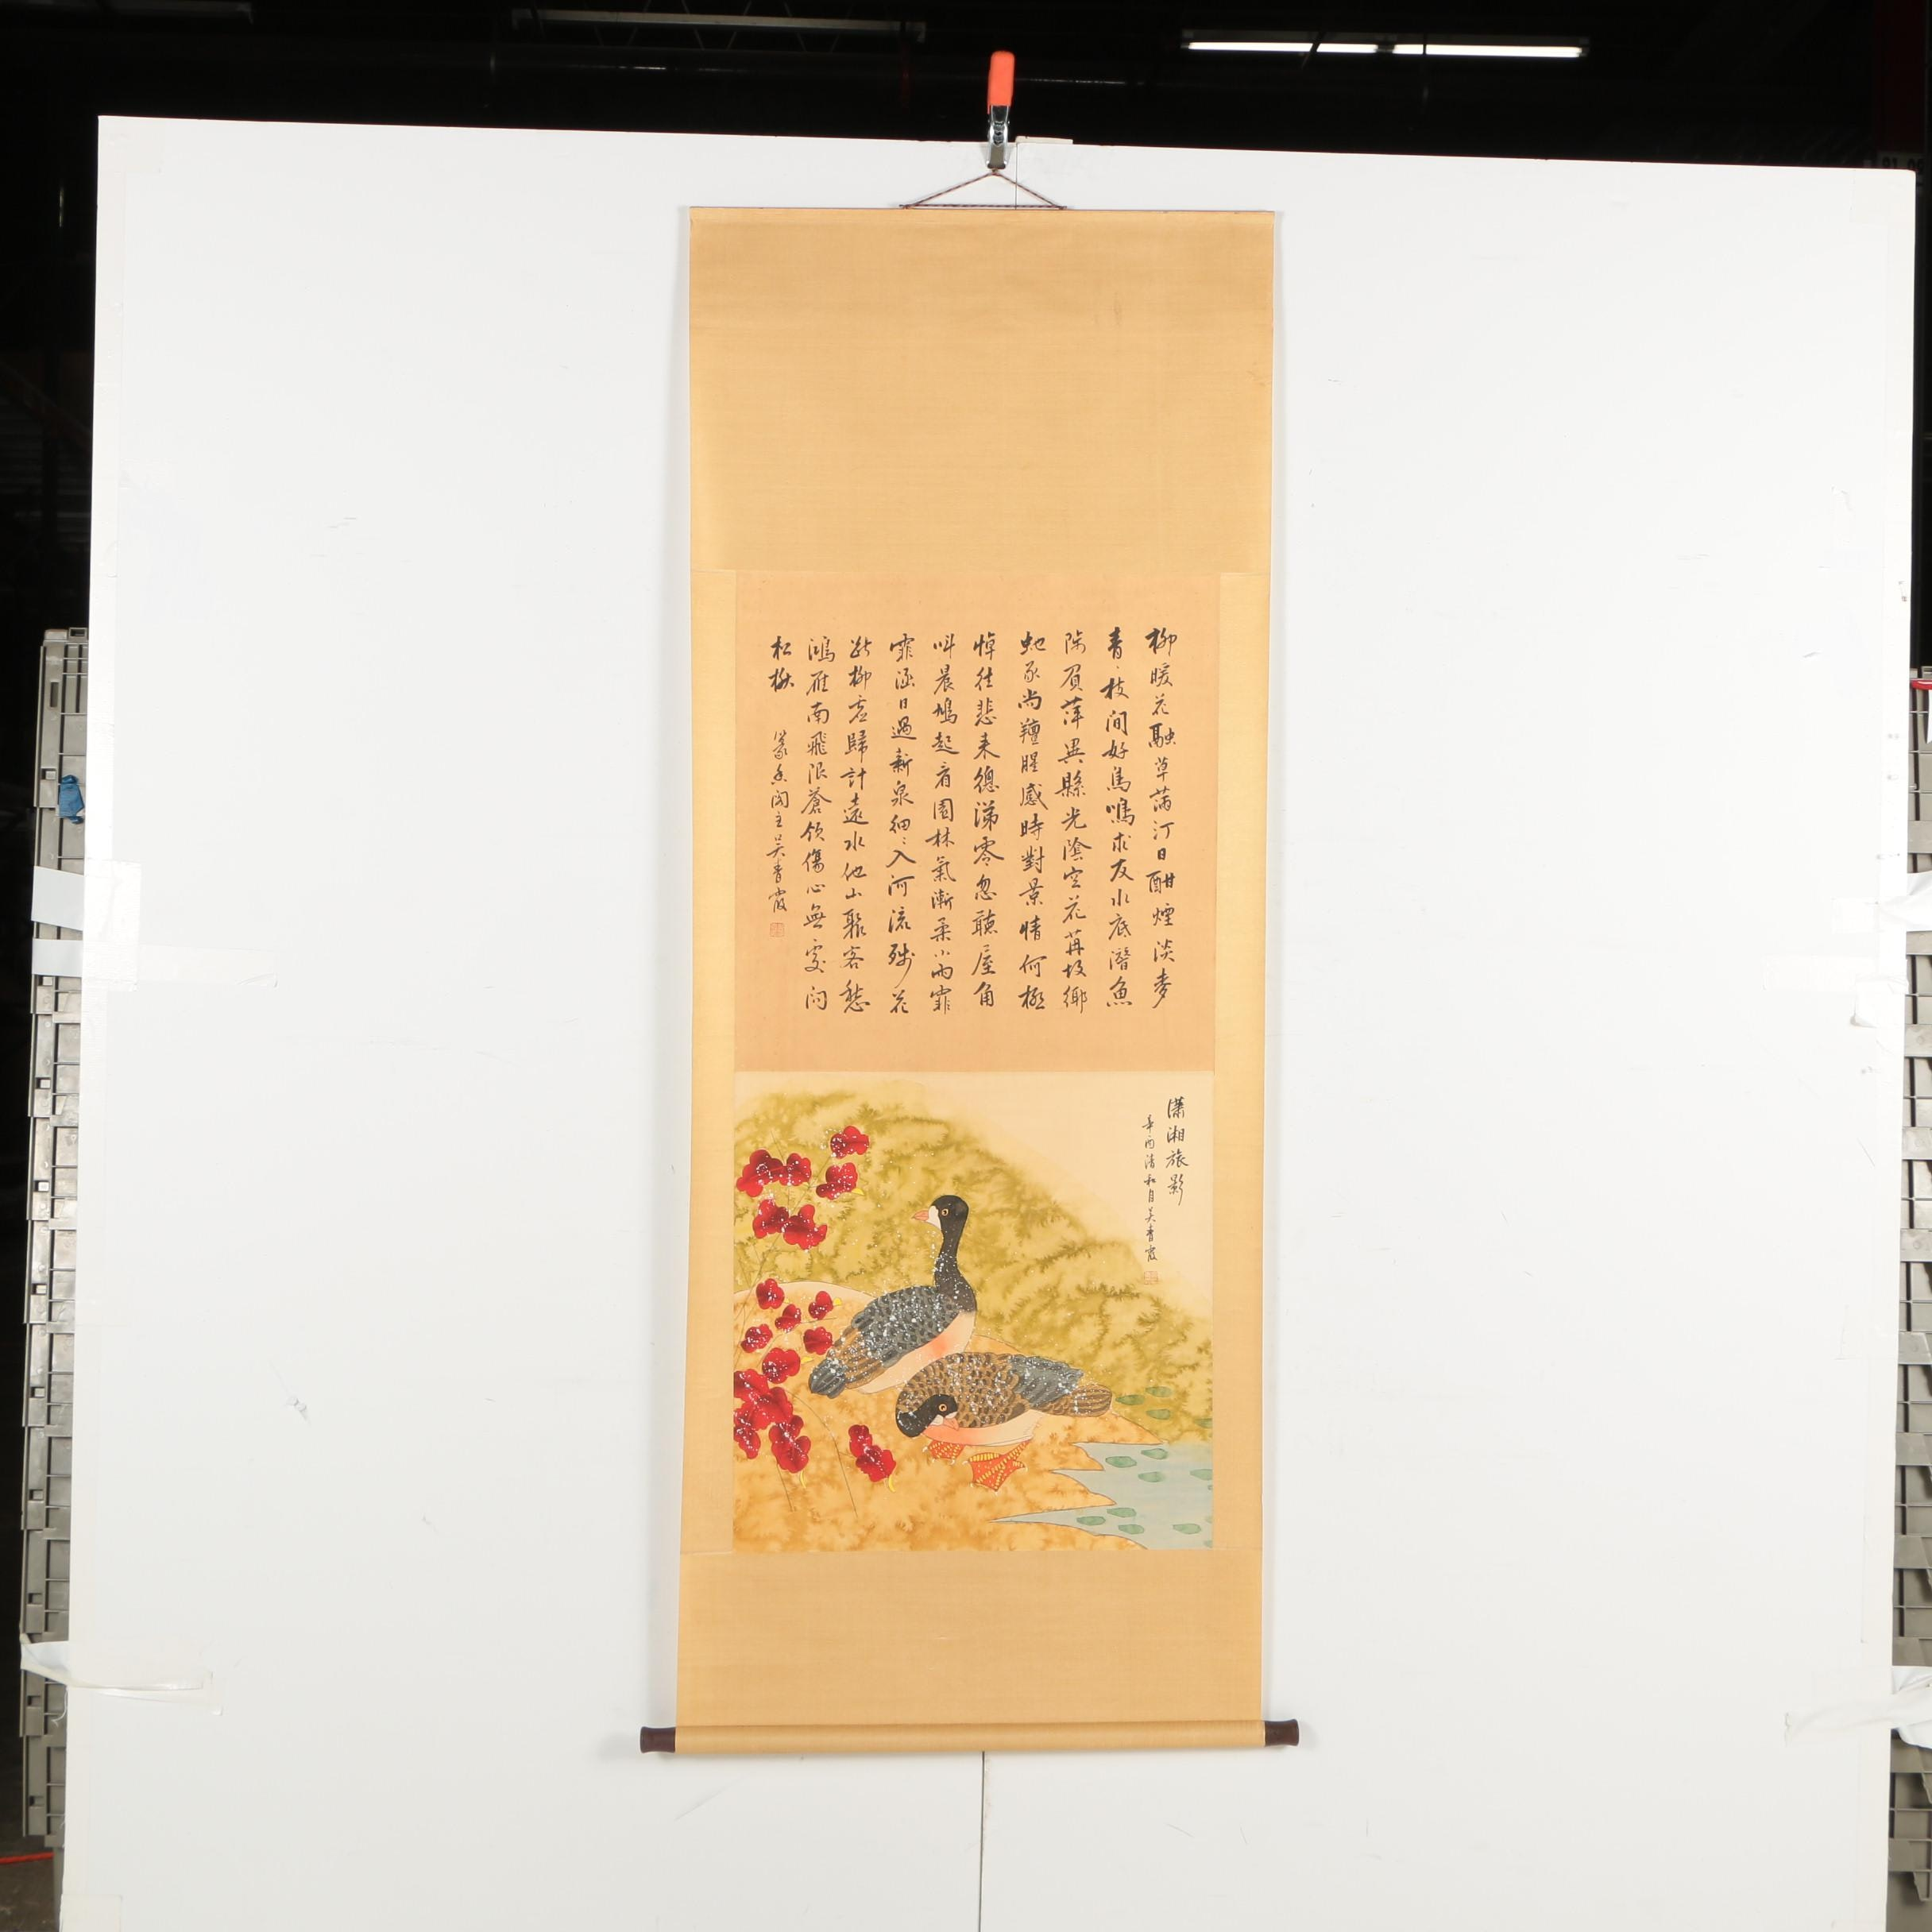 Chinese Ink and Watercolor Painting with Calligraphy on Hanging Scroll